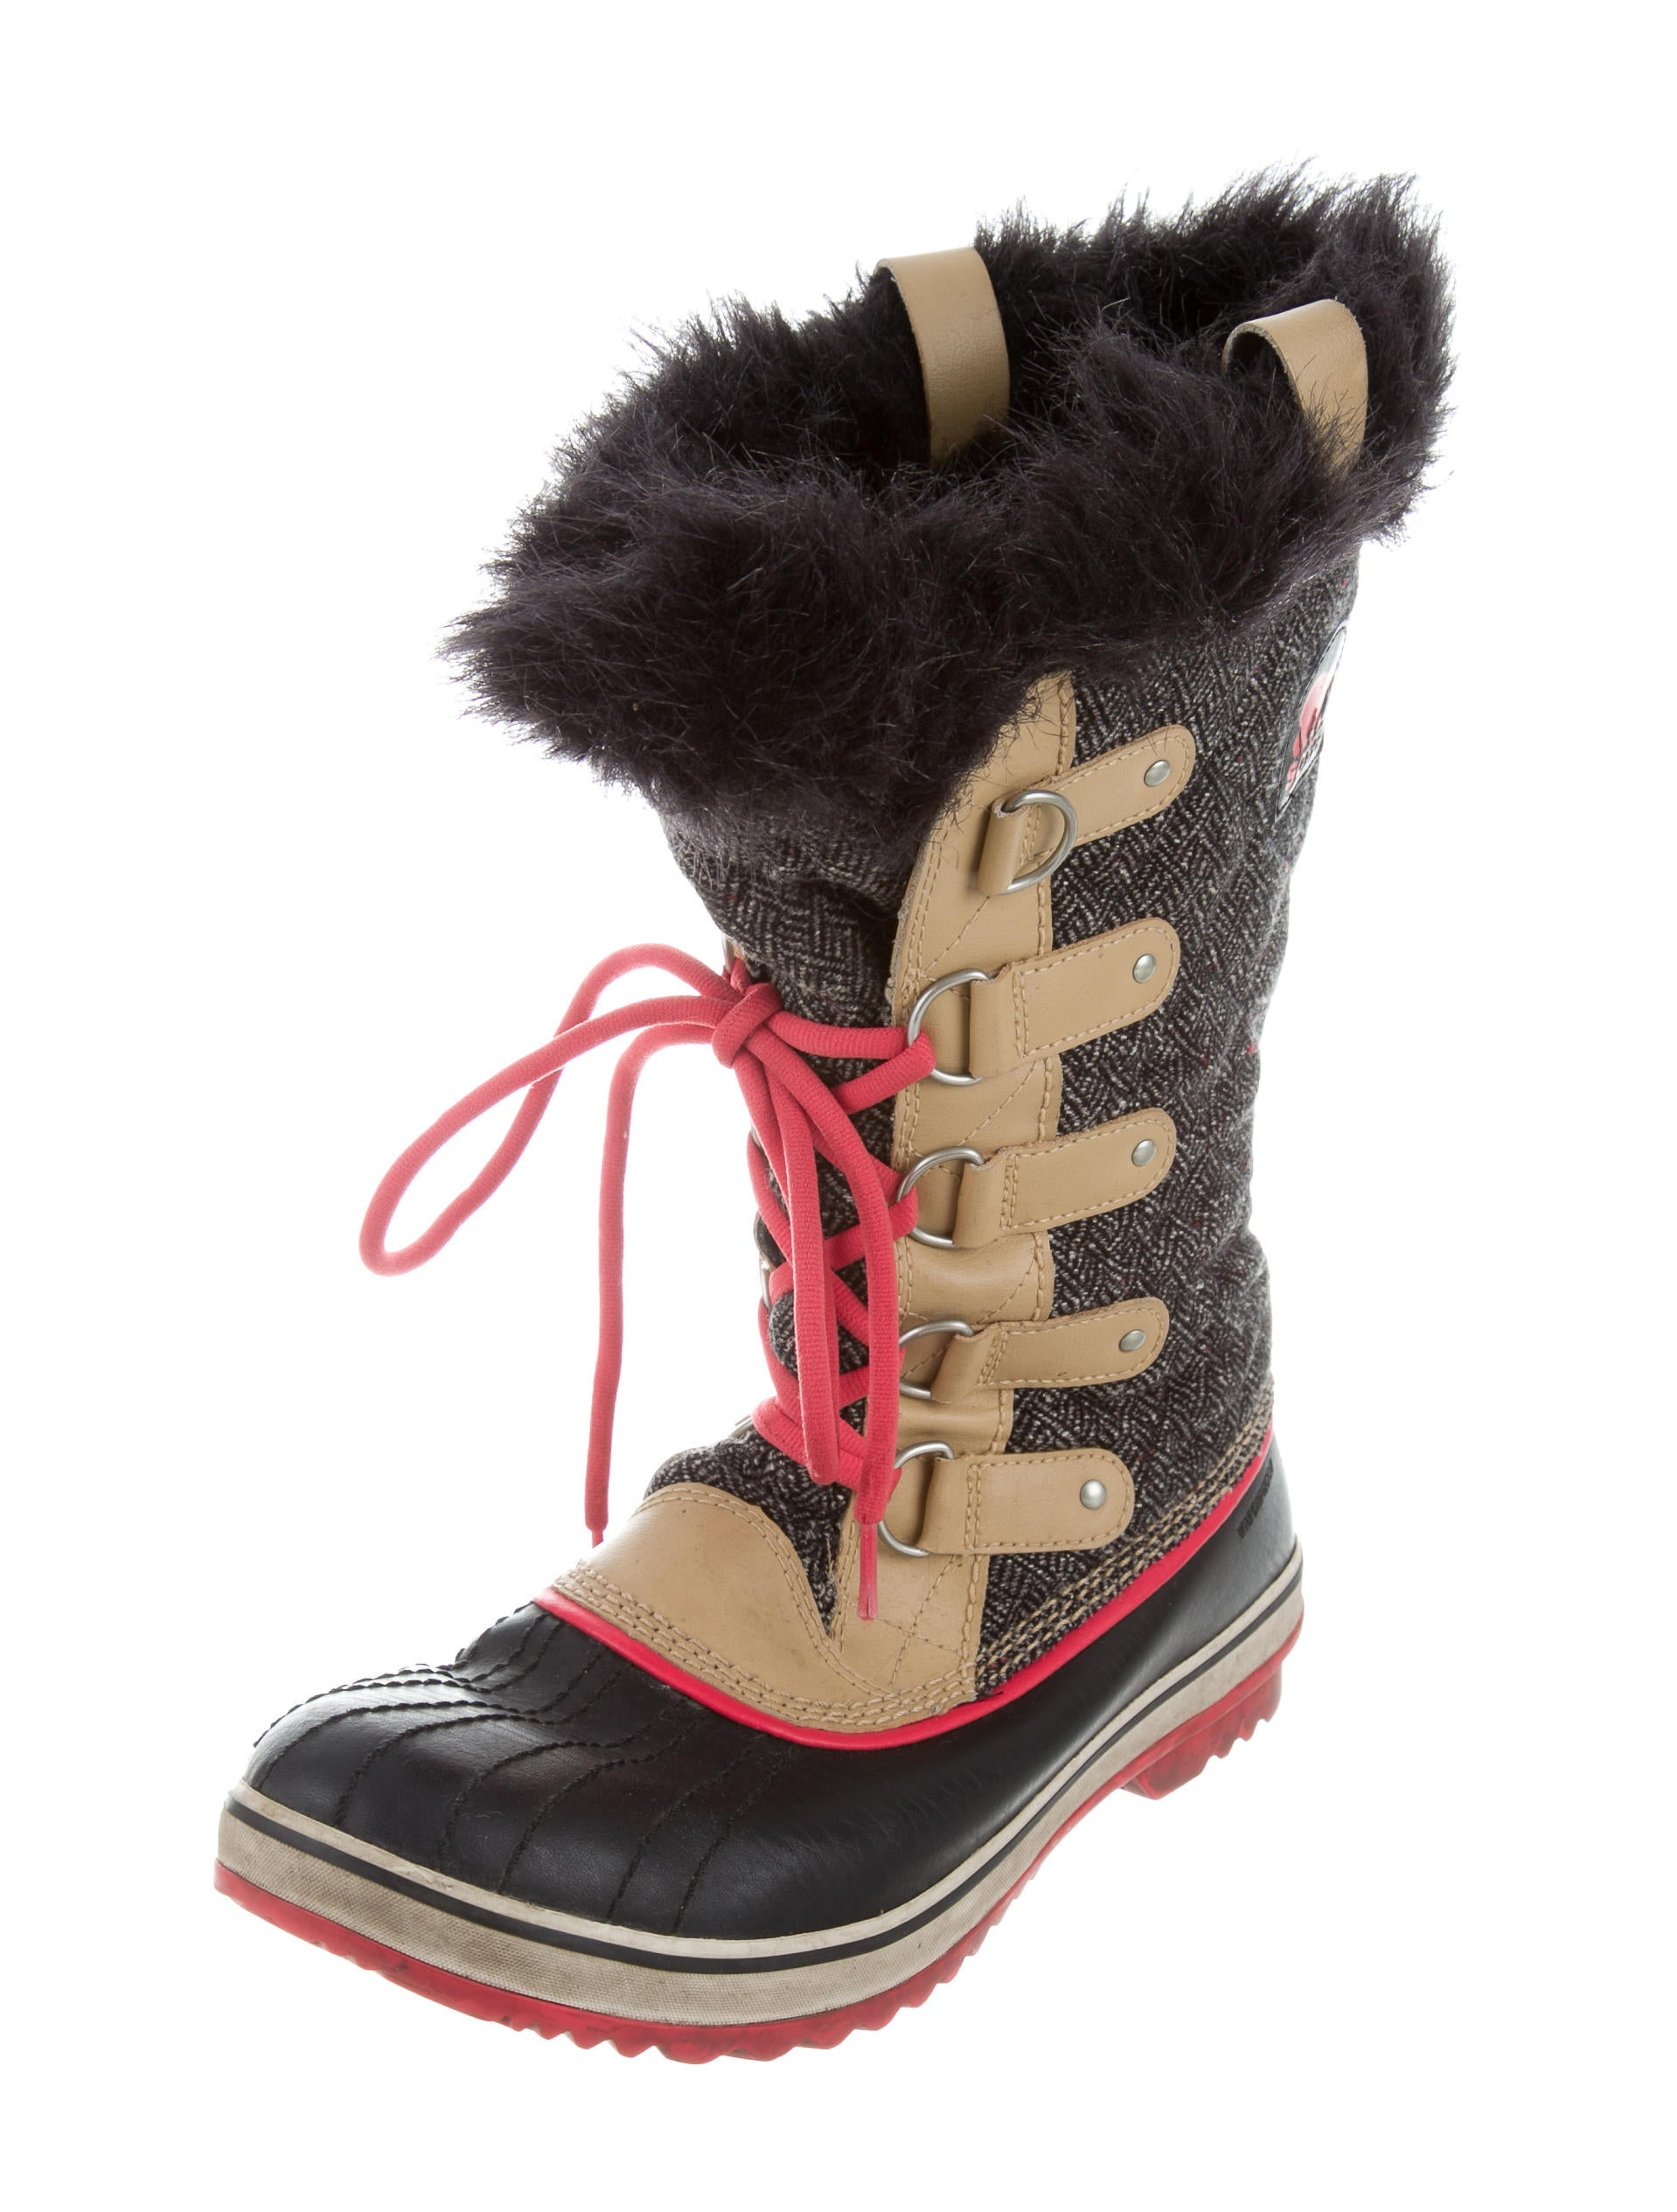 sorel lace up waterproof boots shoes wsorl20241 the